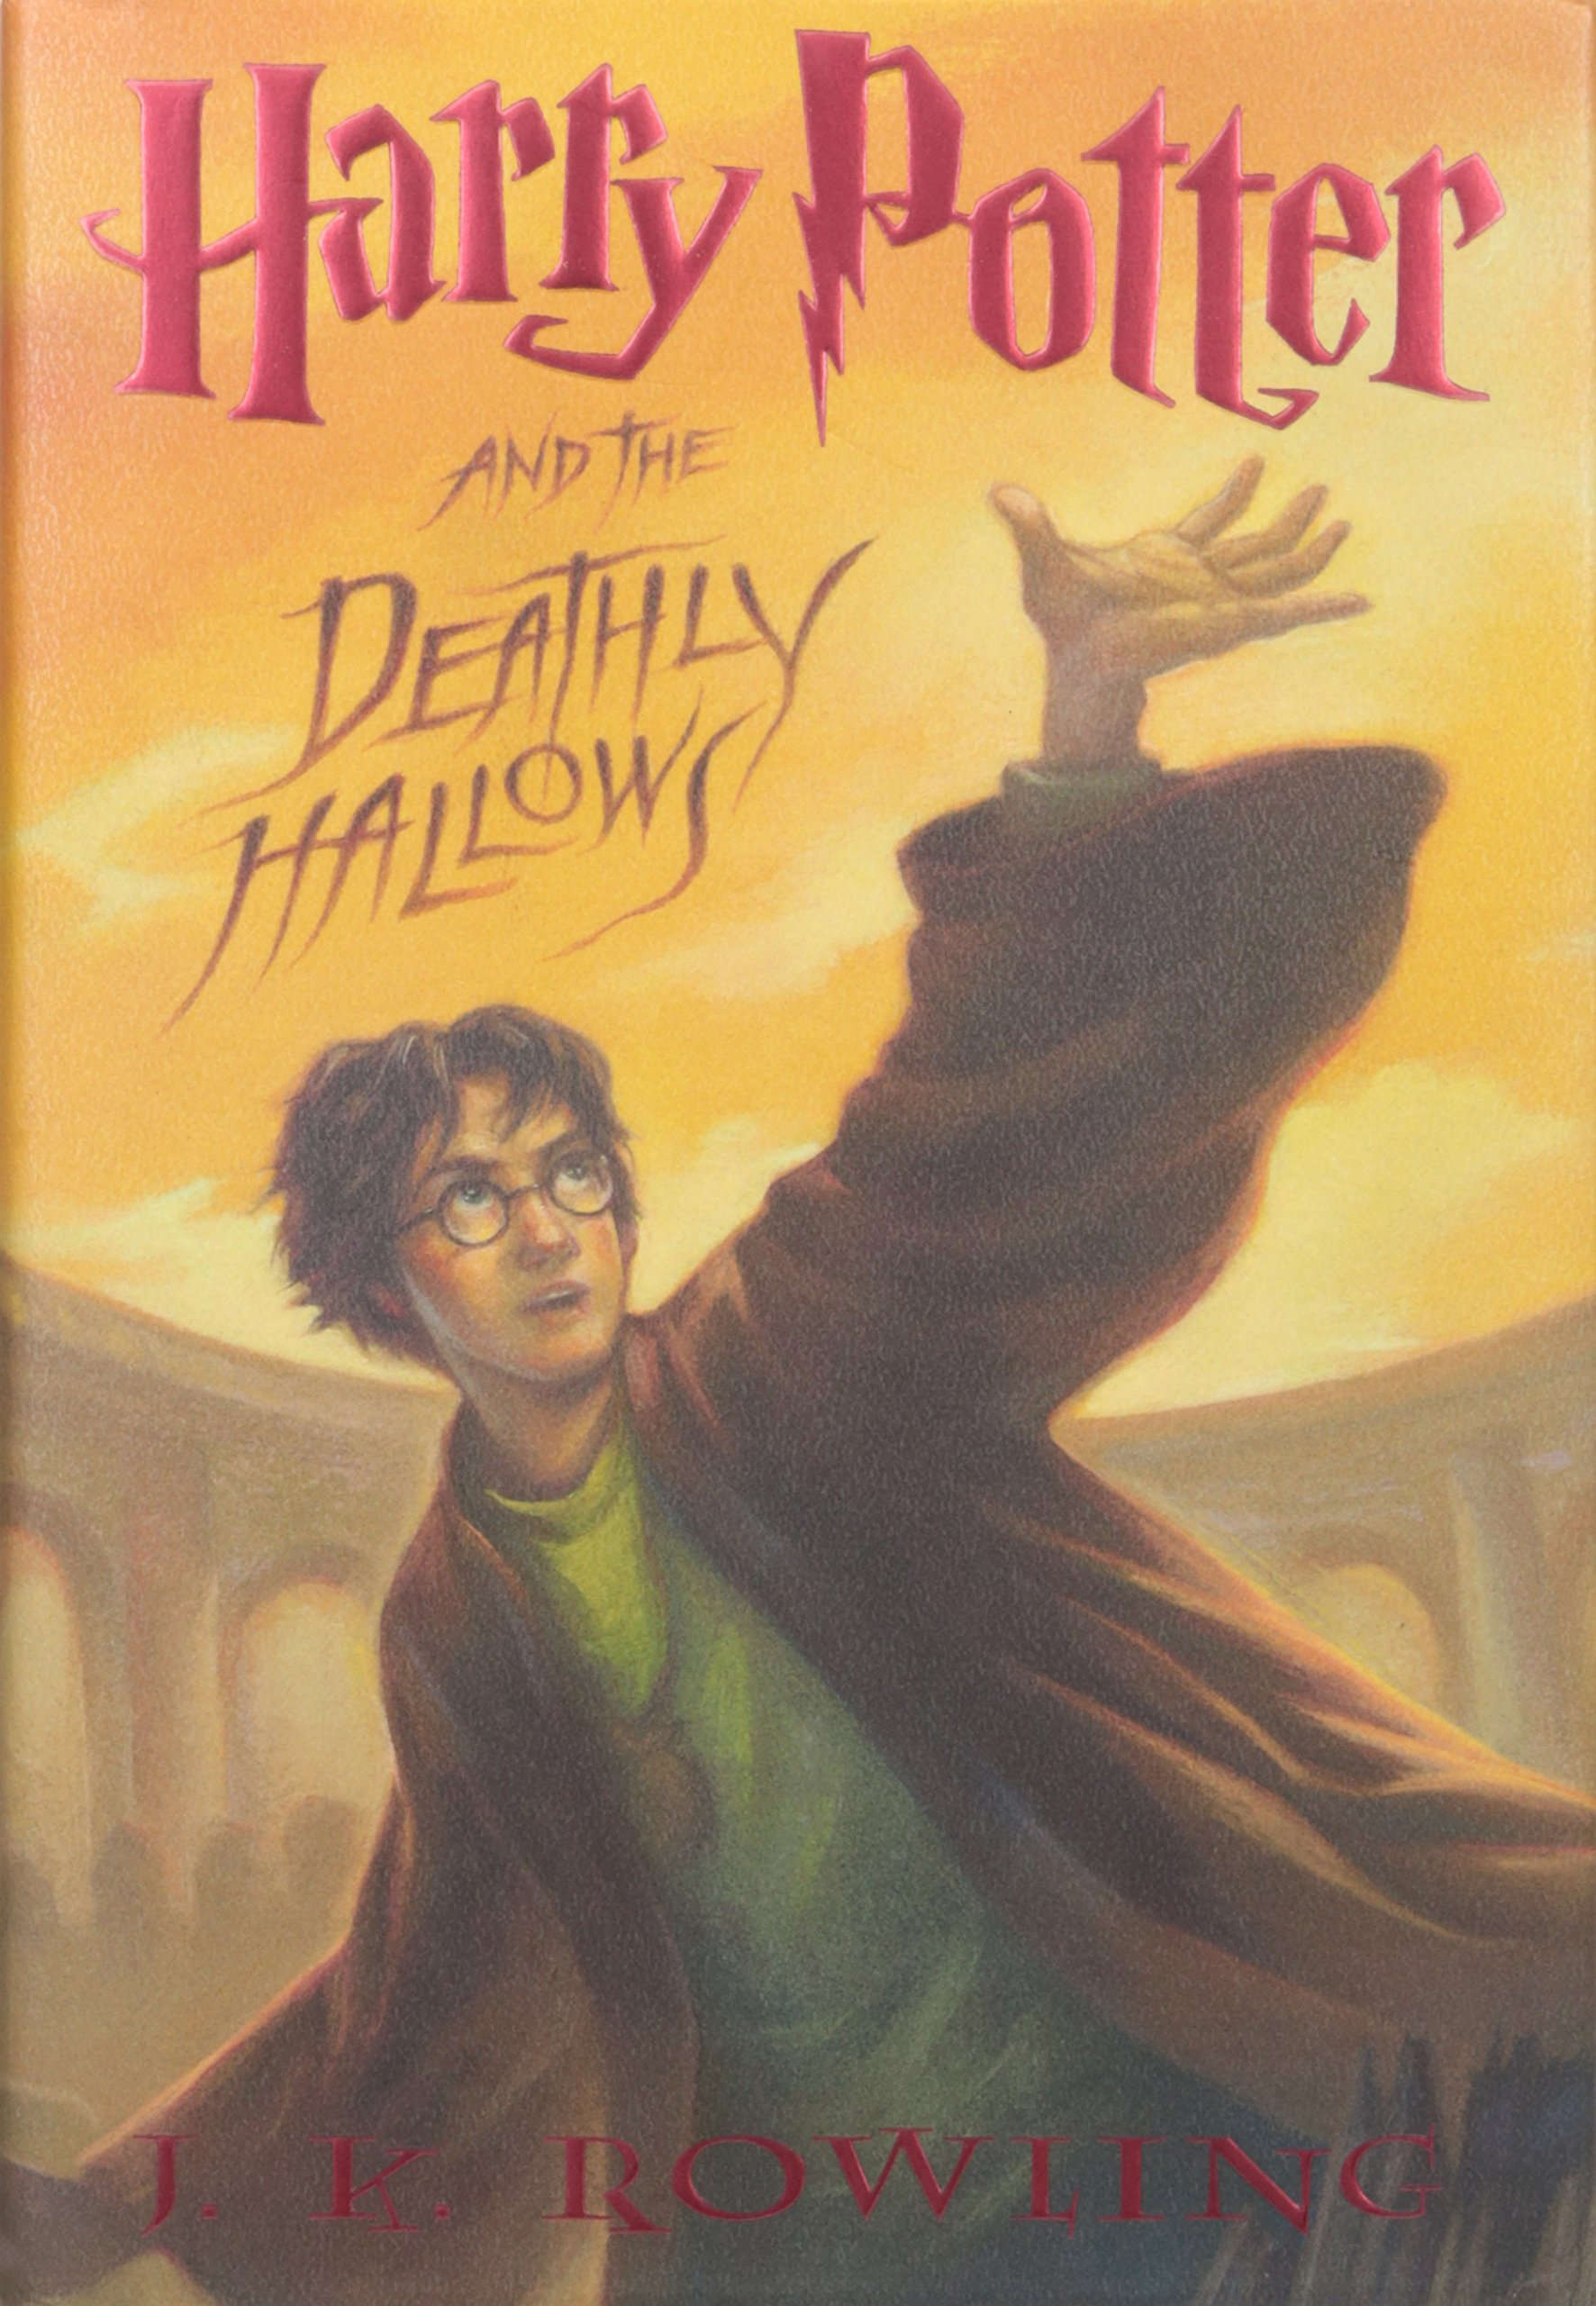 Harry Potter and the Half Blood PrinceHarry Potter and the Deathly Hallows